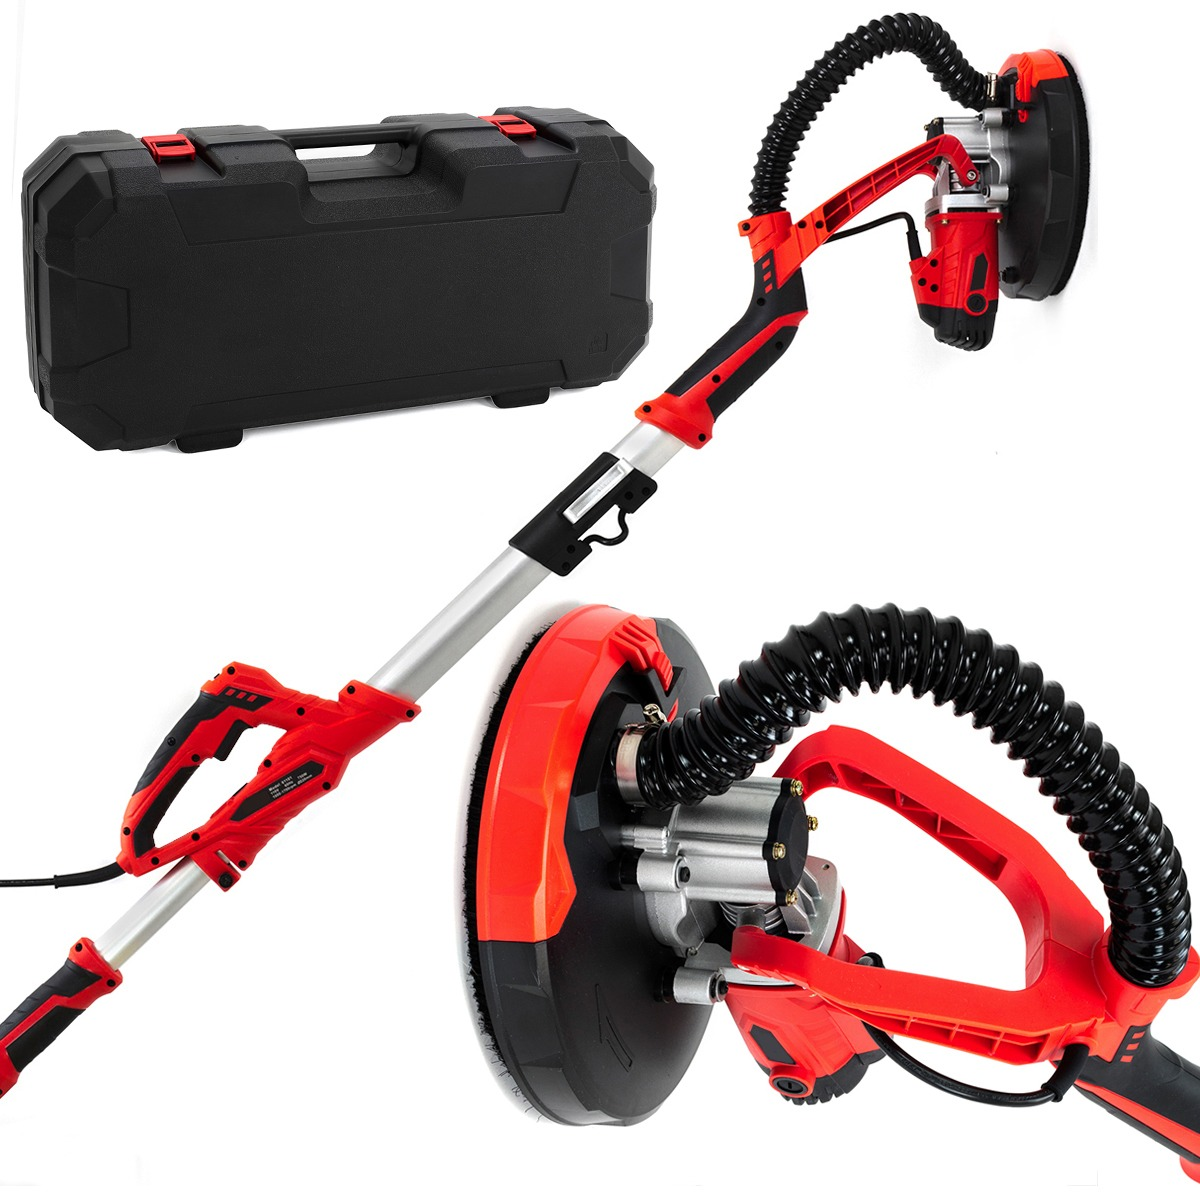 750W Adjustable Drywall Sander Tool, with Case